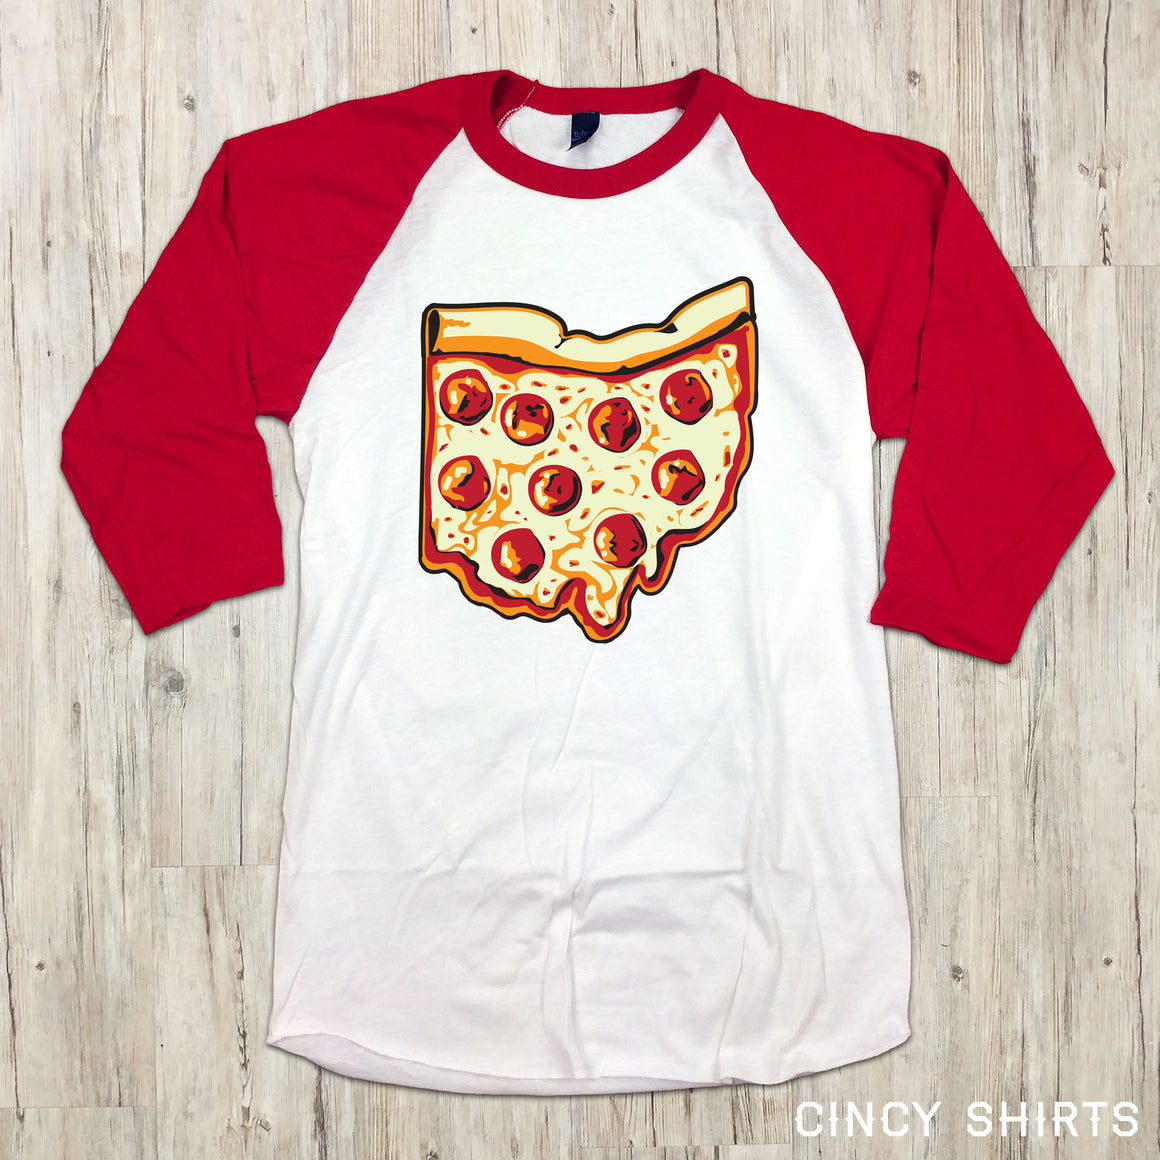 Pizza Ohio Raglan